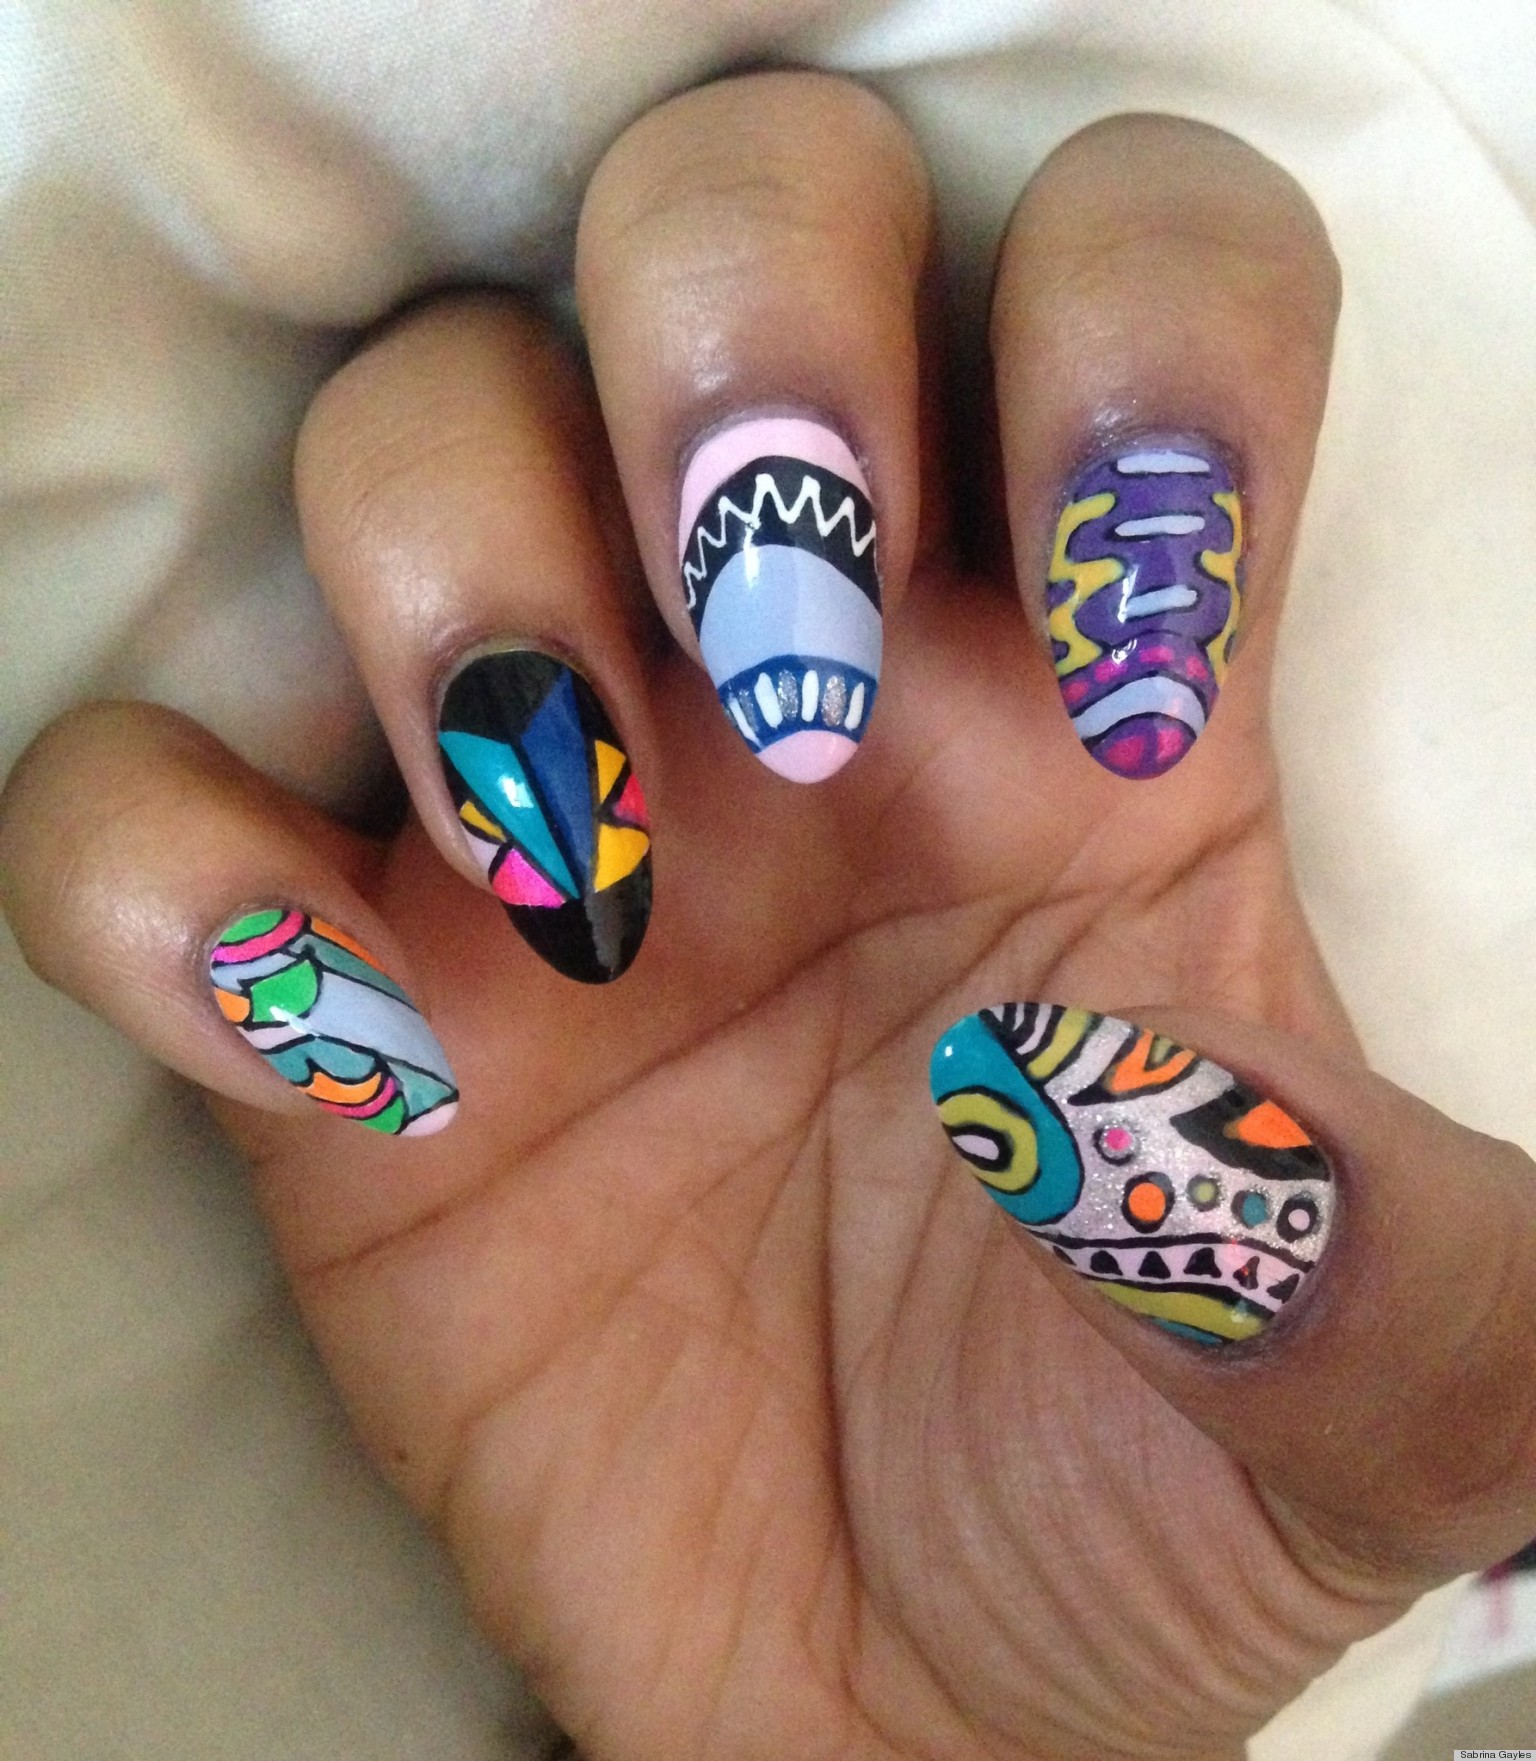 Nail art designs 2014 ideas images tutorial step by step flowers nail art designs 2014 ideas images tutorial step by step flowers pics photos wallpapers diy nail art nail art designs 2014 ideas images tutorial step by solutioingenieria Choice Image